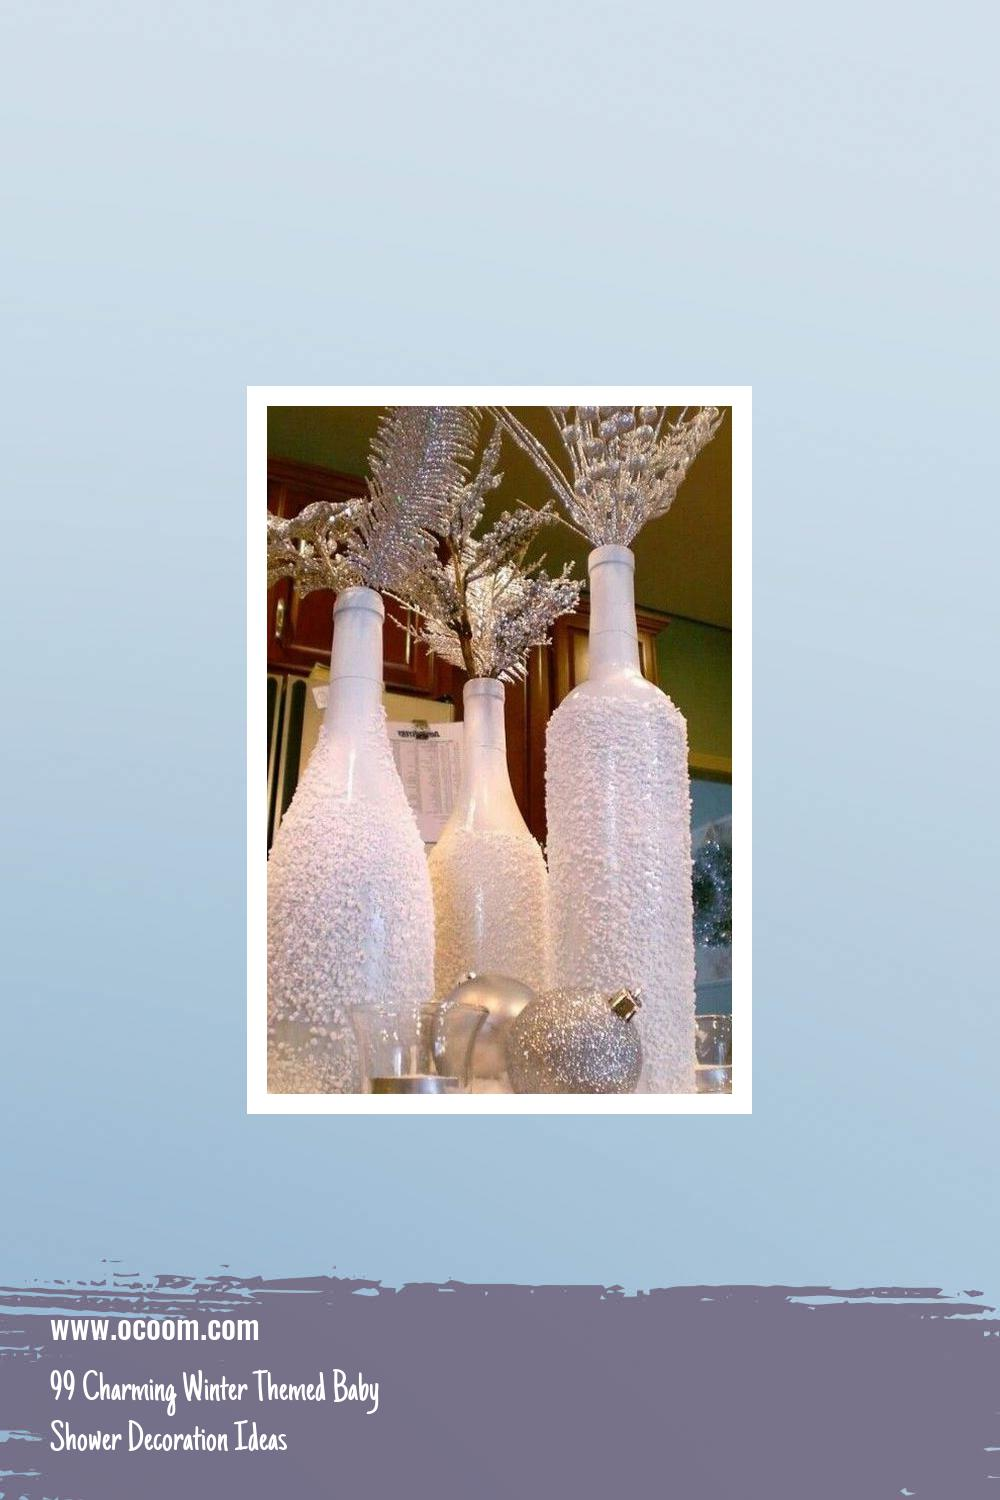 99 Charming Winter Themed Baby Shower Decoration Ideas 5